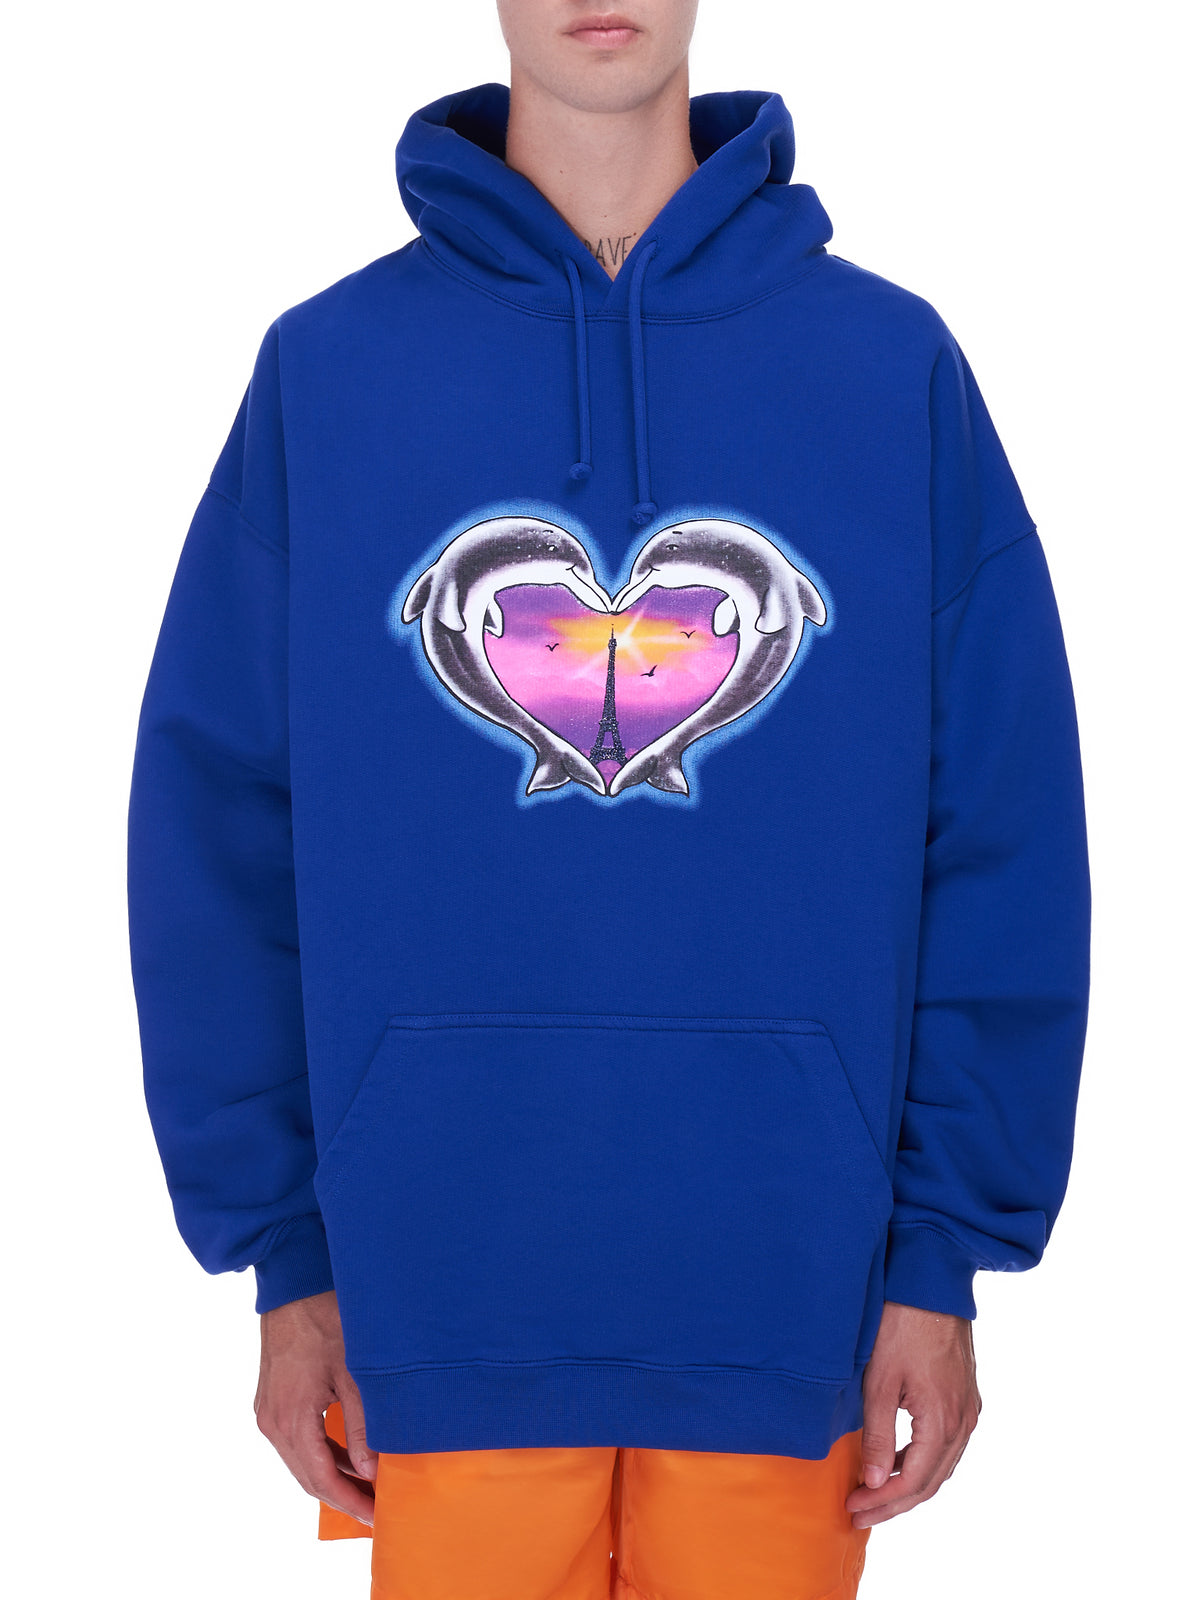 Dolphin Graphic Hoodie (UA52TR790N-ROYAL-BLUE)